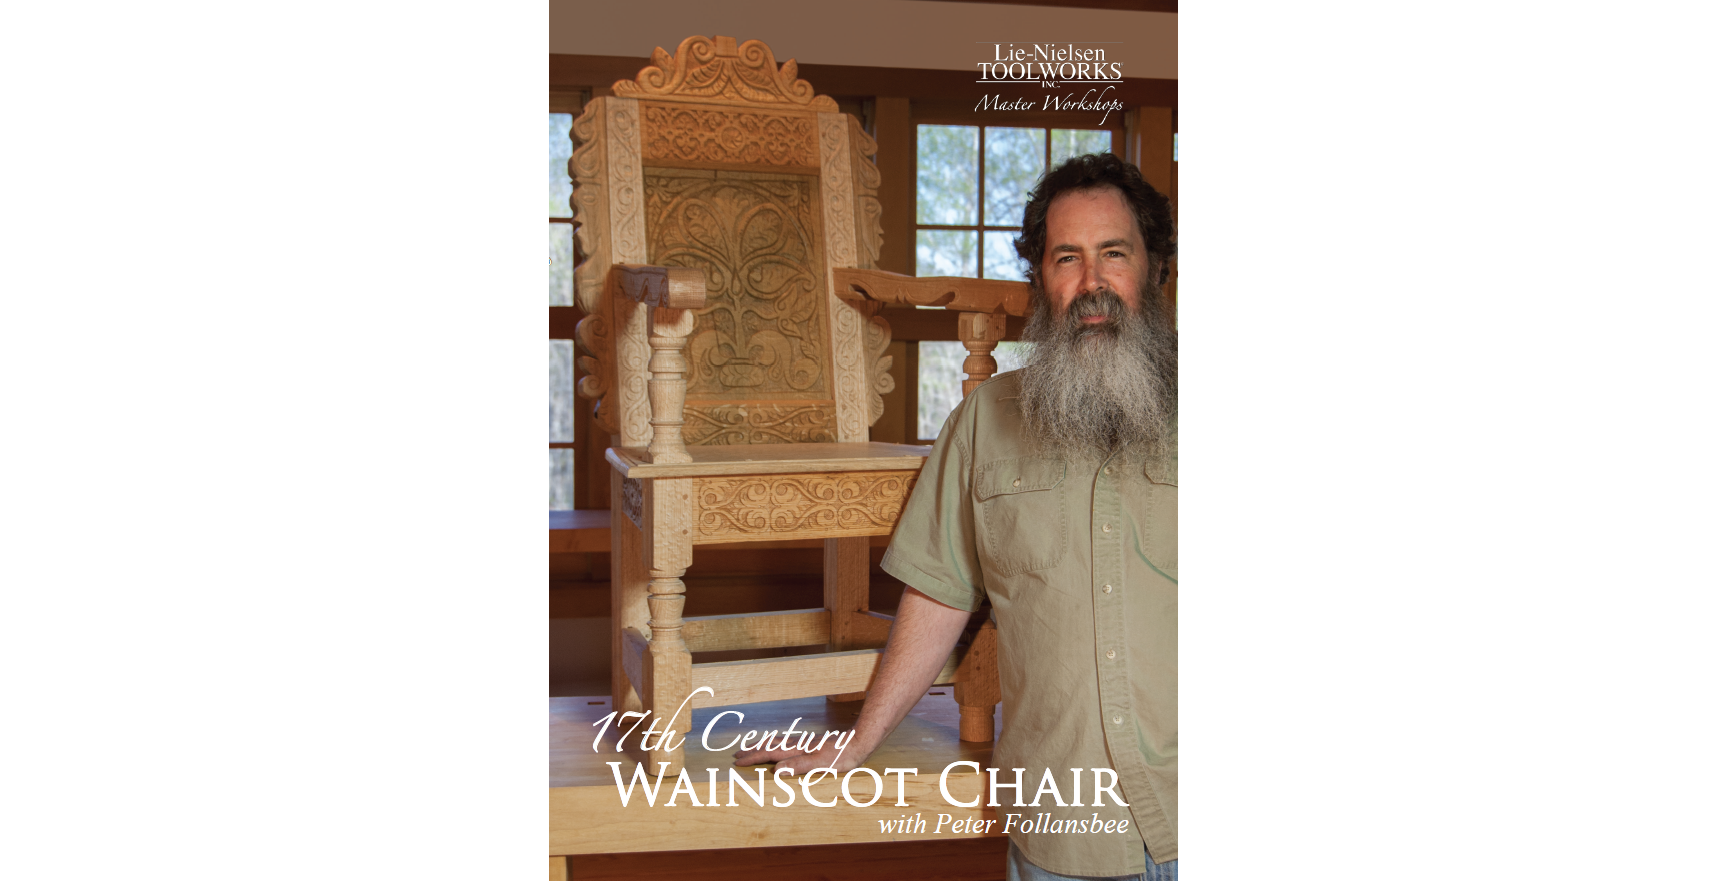 17th Century Wainscot Chair - DVD